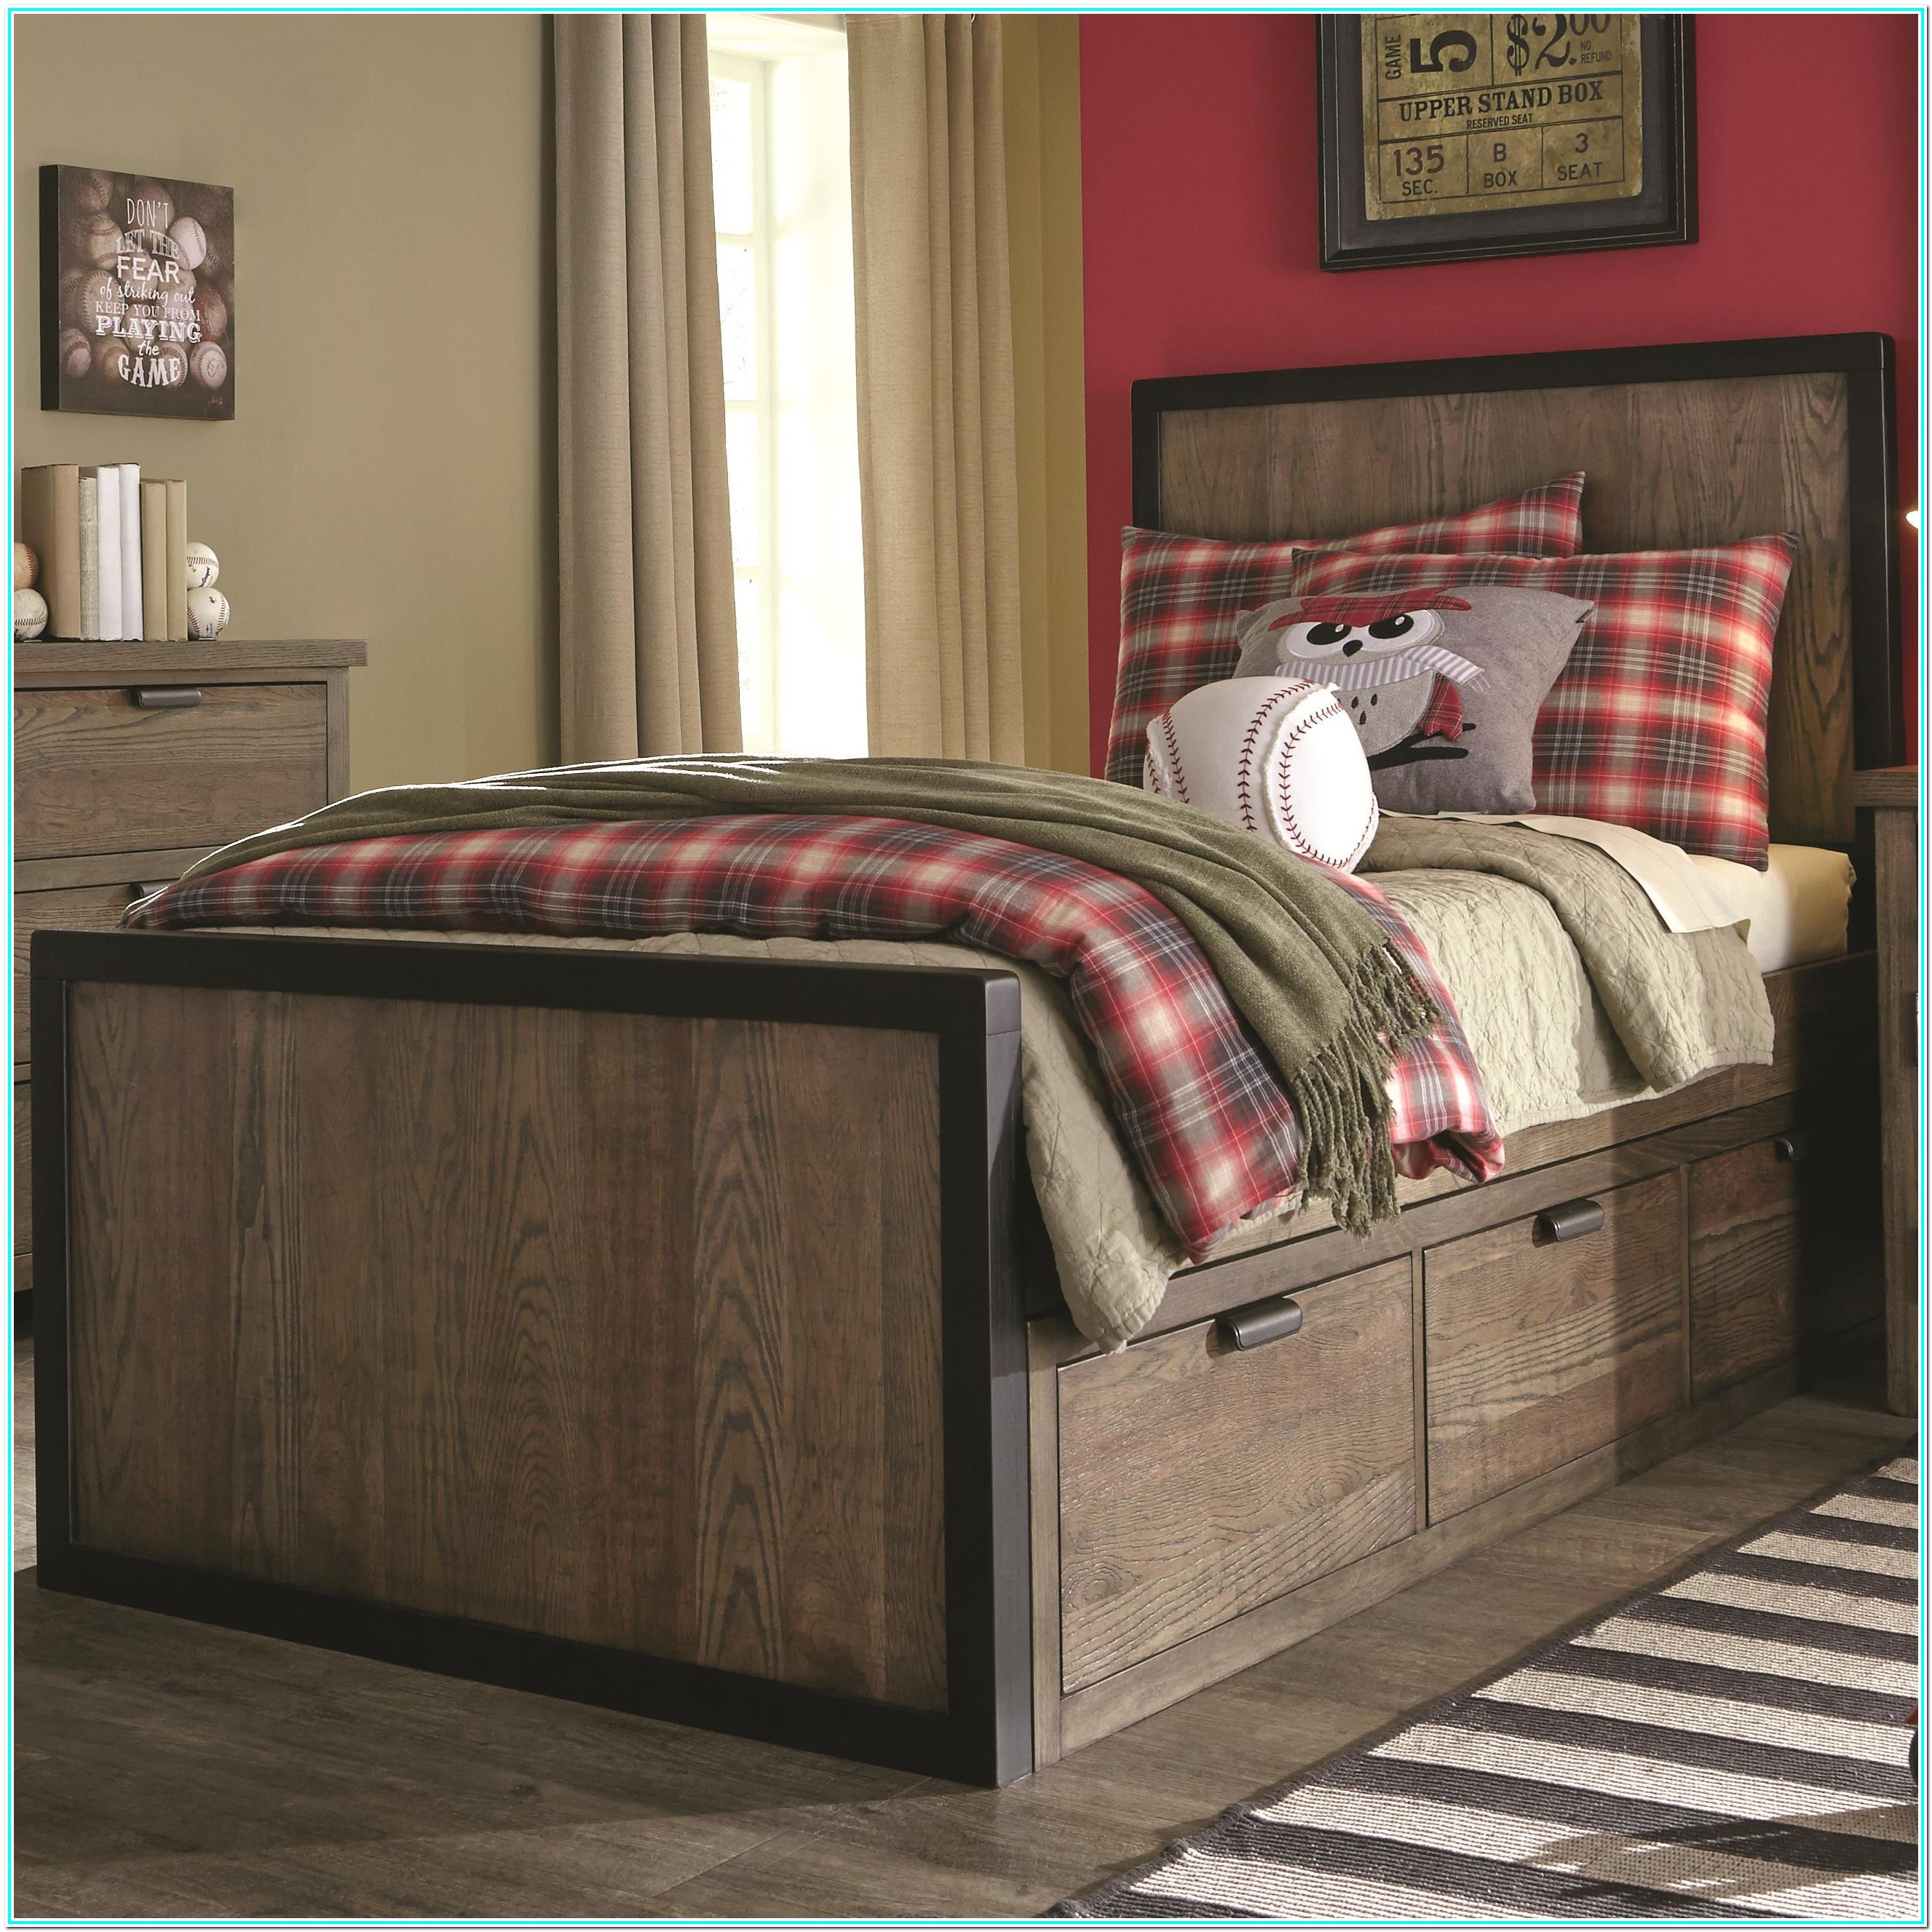 Bedroom furniture with drawers under bed form resume - Bedroom sets with drawers under bed ...